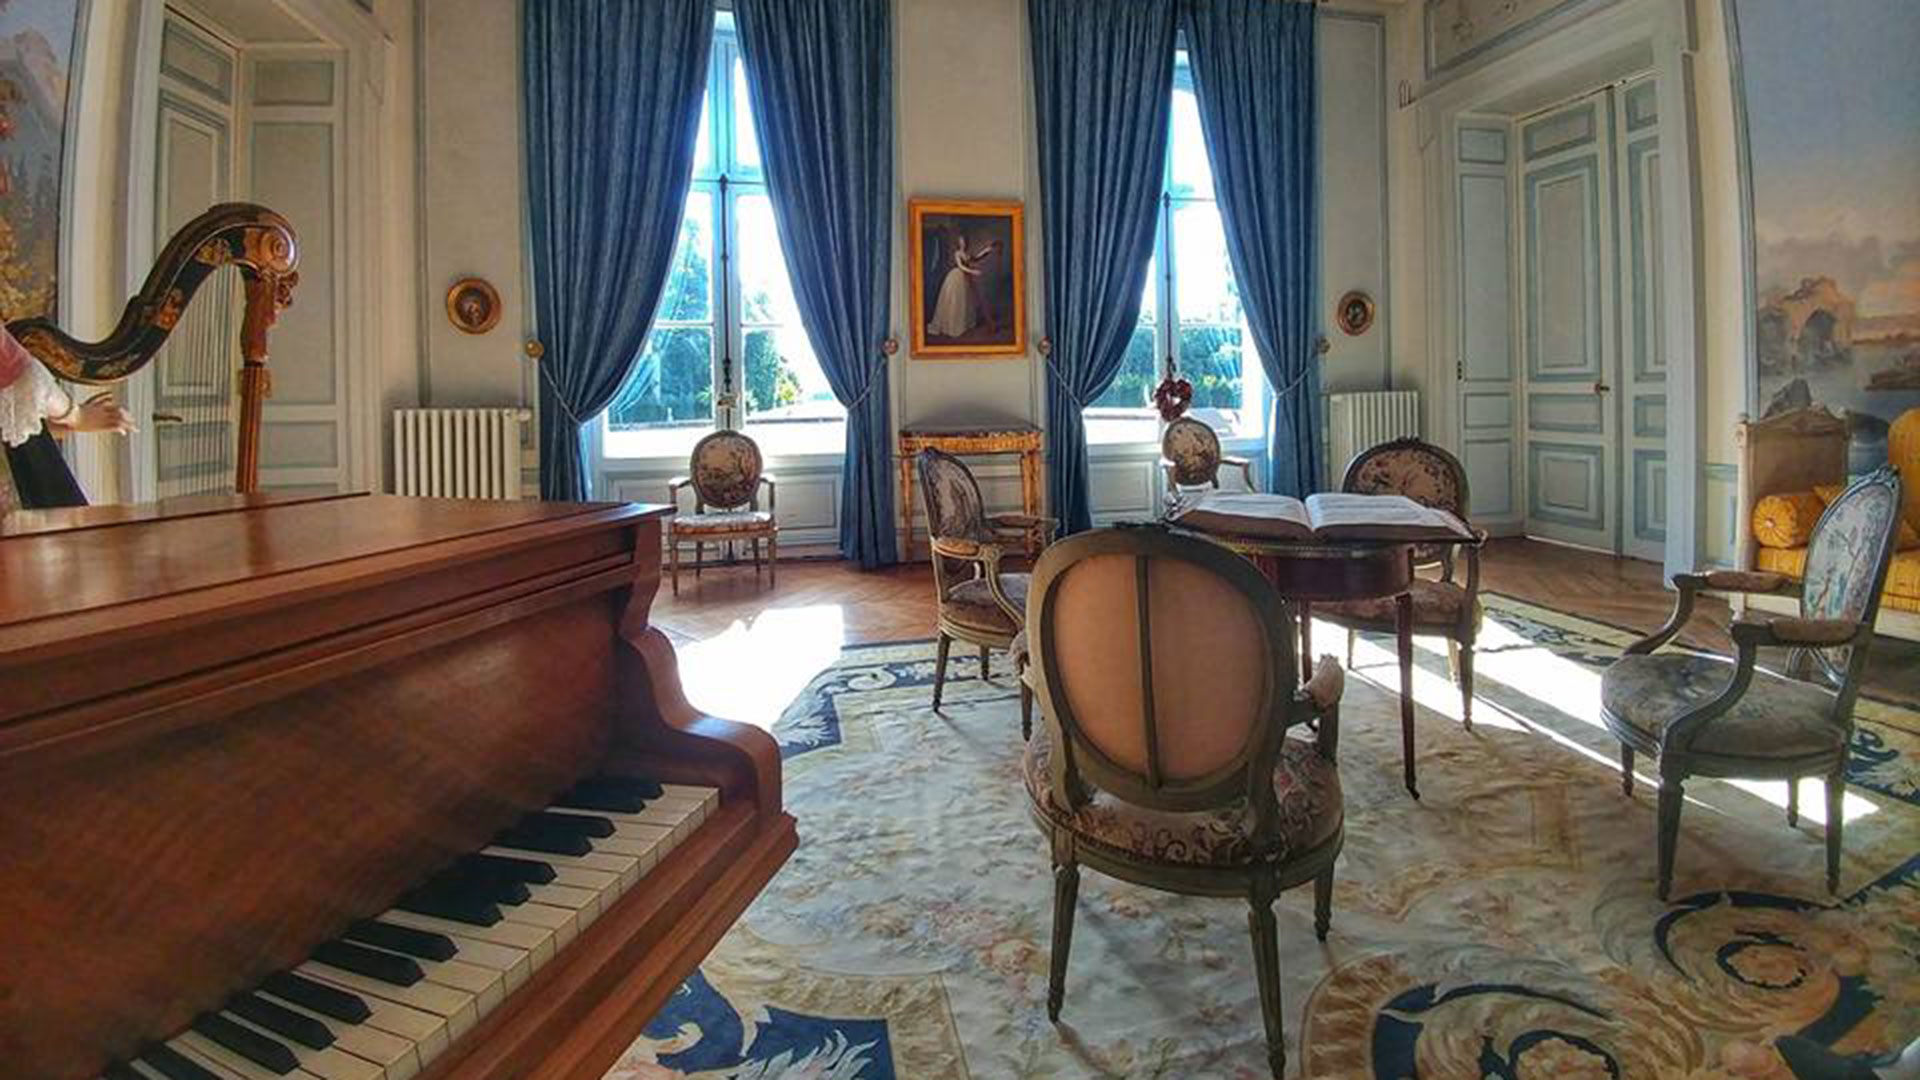 A music room in Chateau des Moyeux in France.